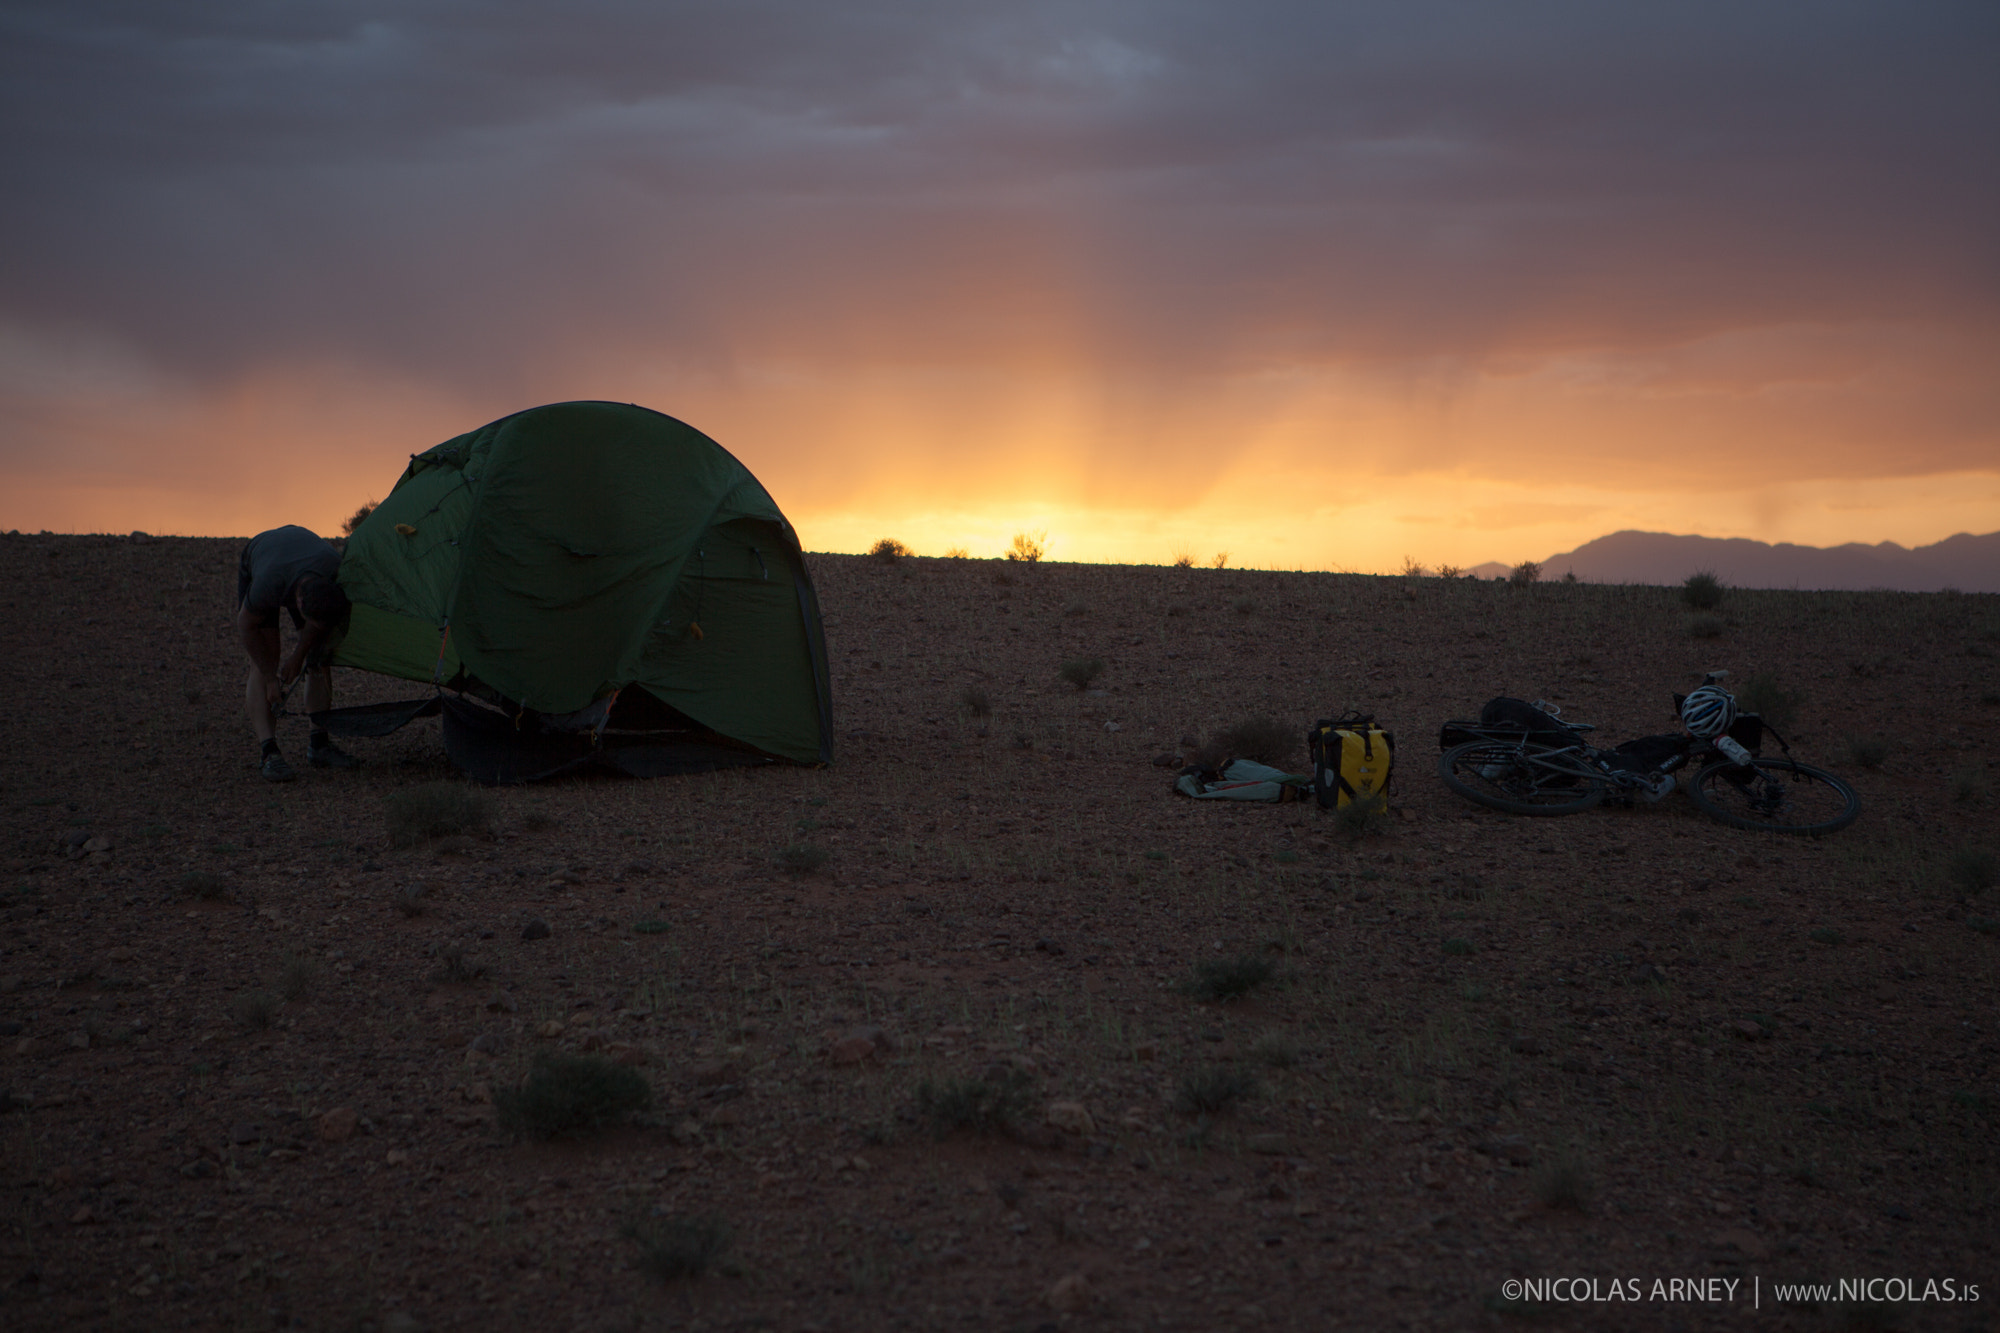 Photograph Camp at Sunset in Morocco by Nicolas Arney on 500px